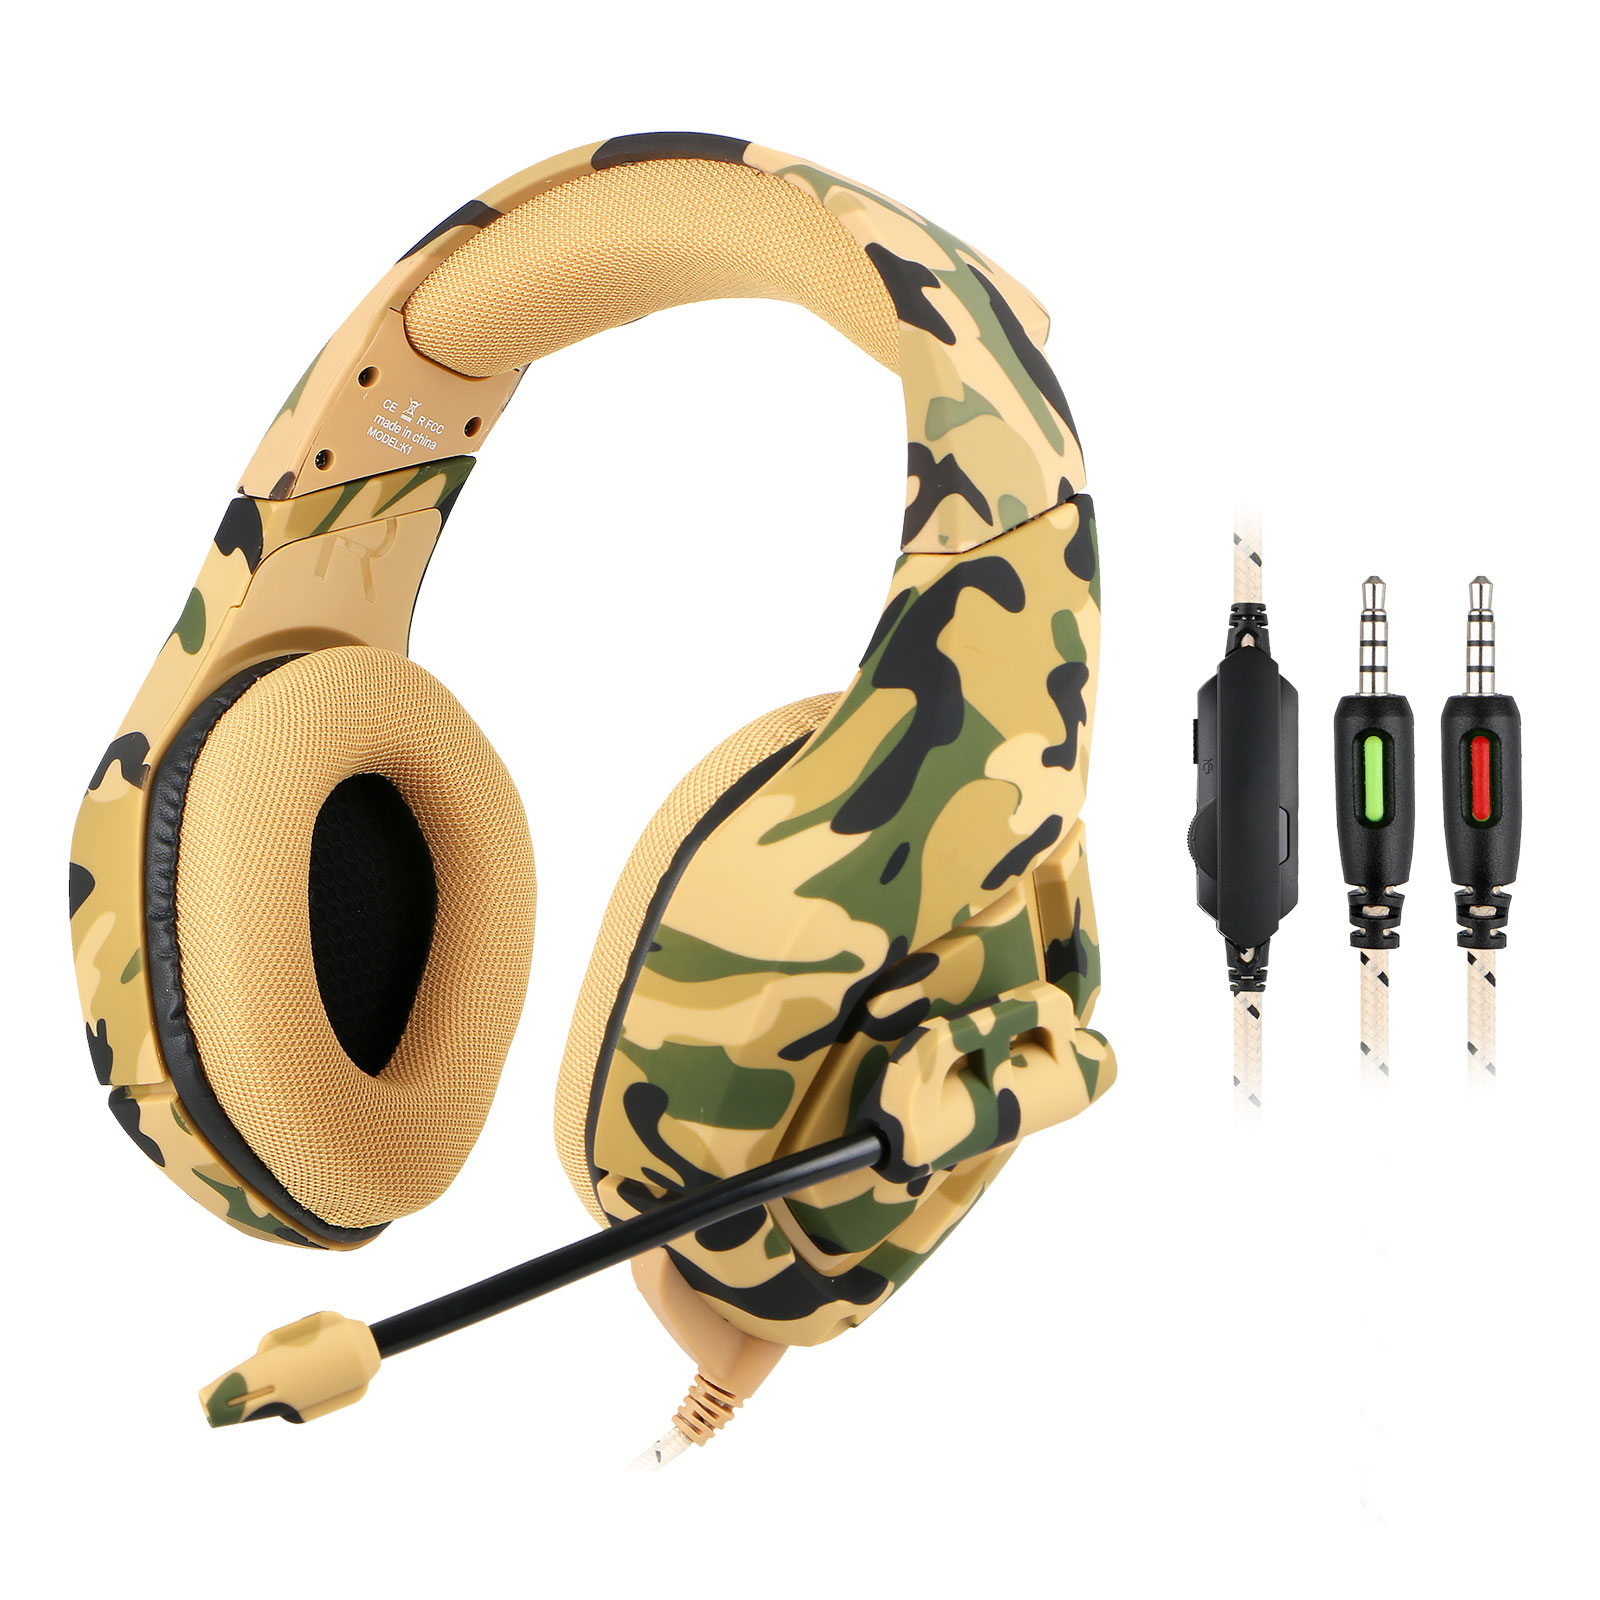 Electronic Sports Headset Stereo Surround Gaming Headphone with Mic for Xbox One PS4 PC Phone Tablet